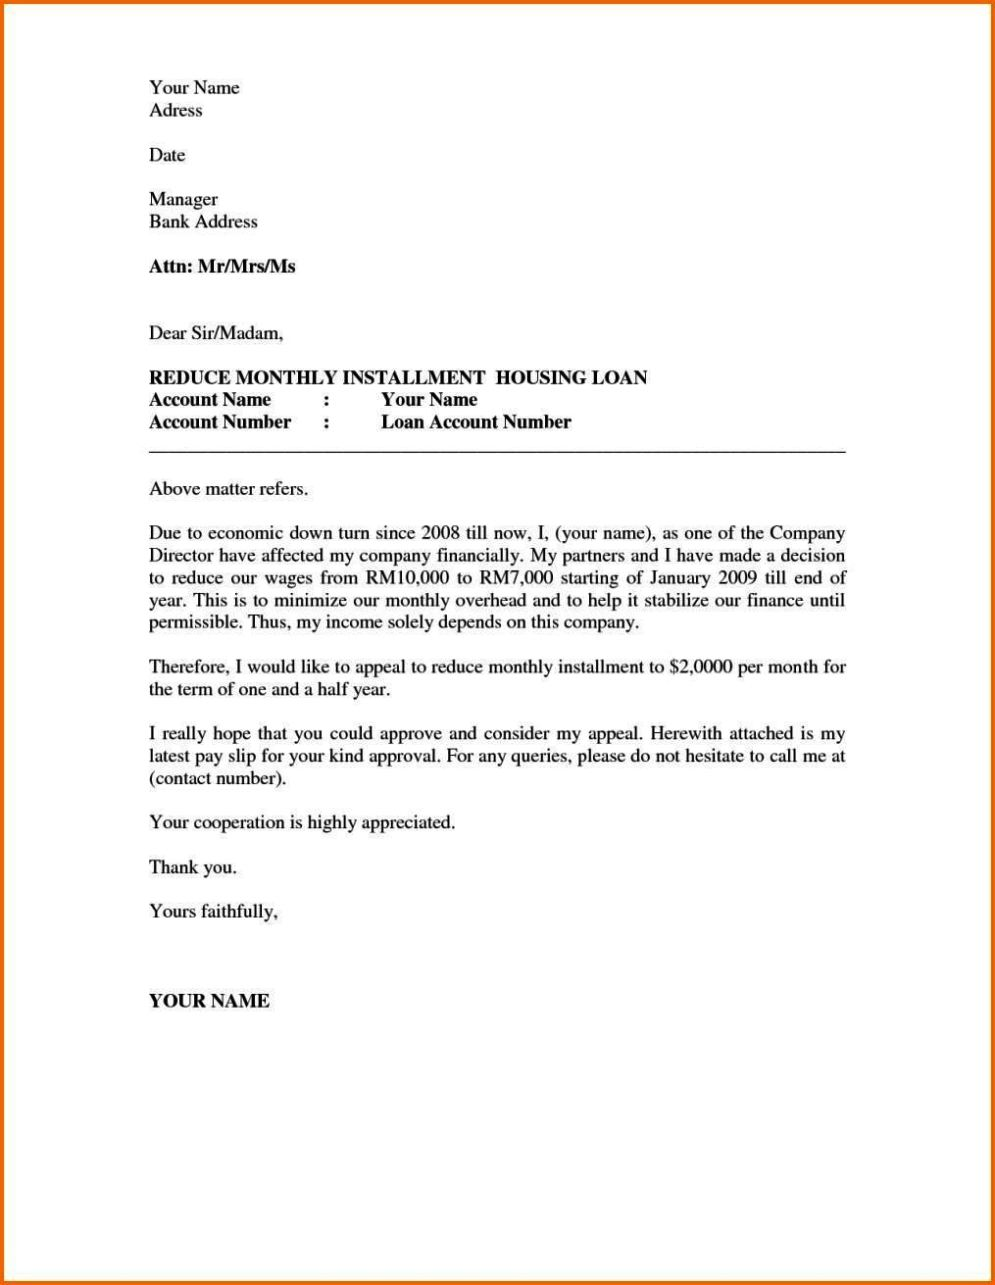 Housing Appeal Letter - Sampletemplatess